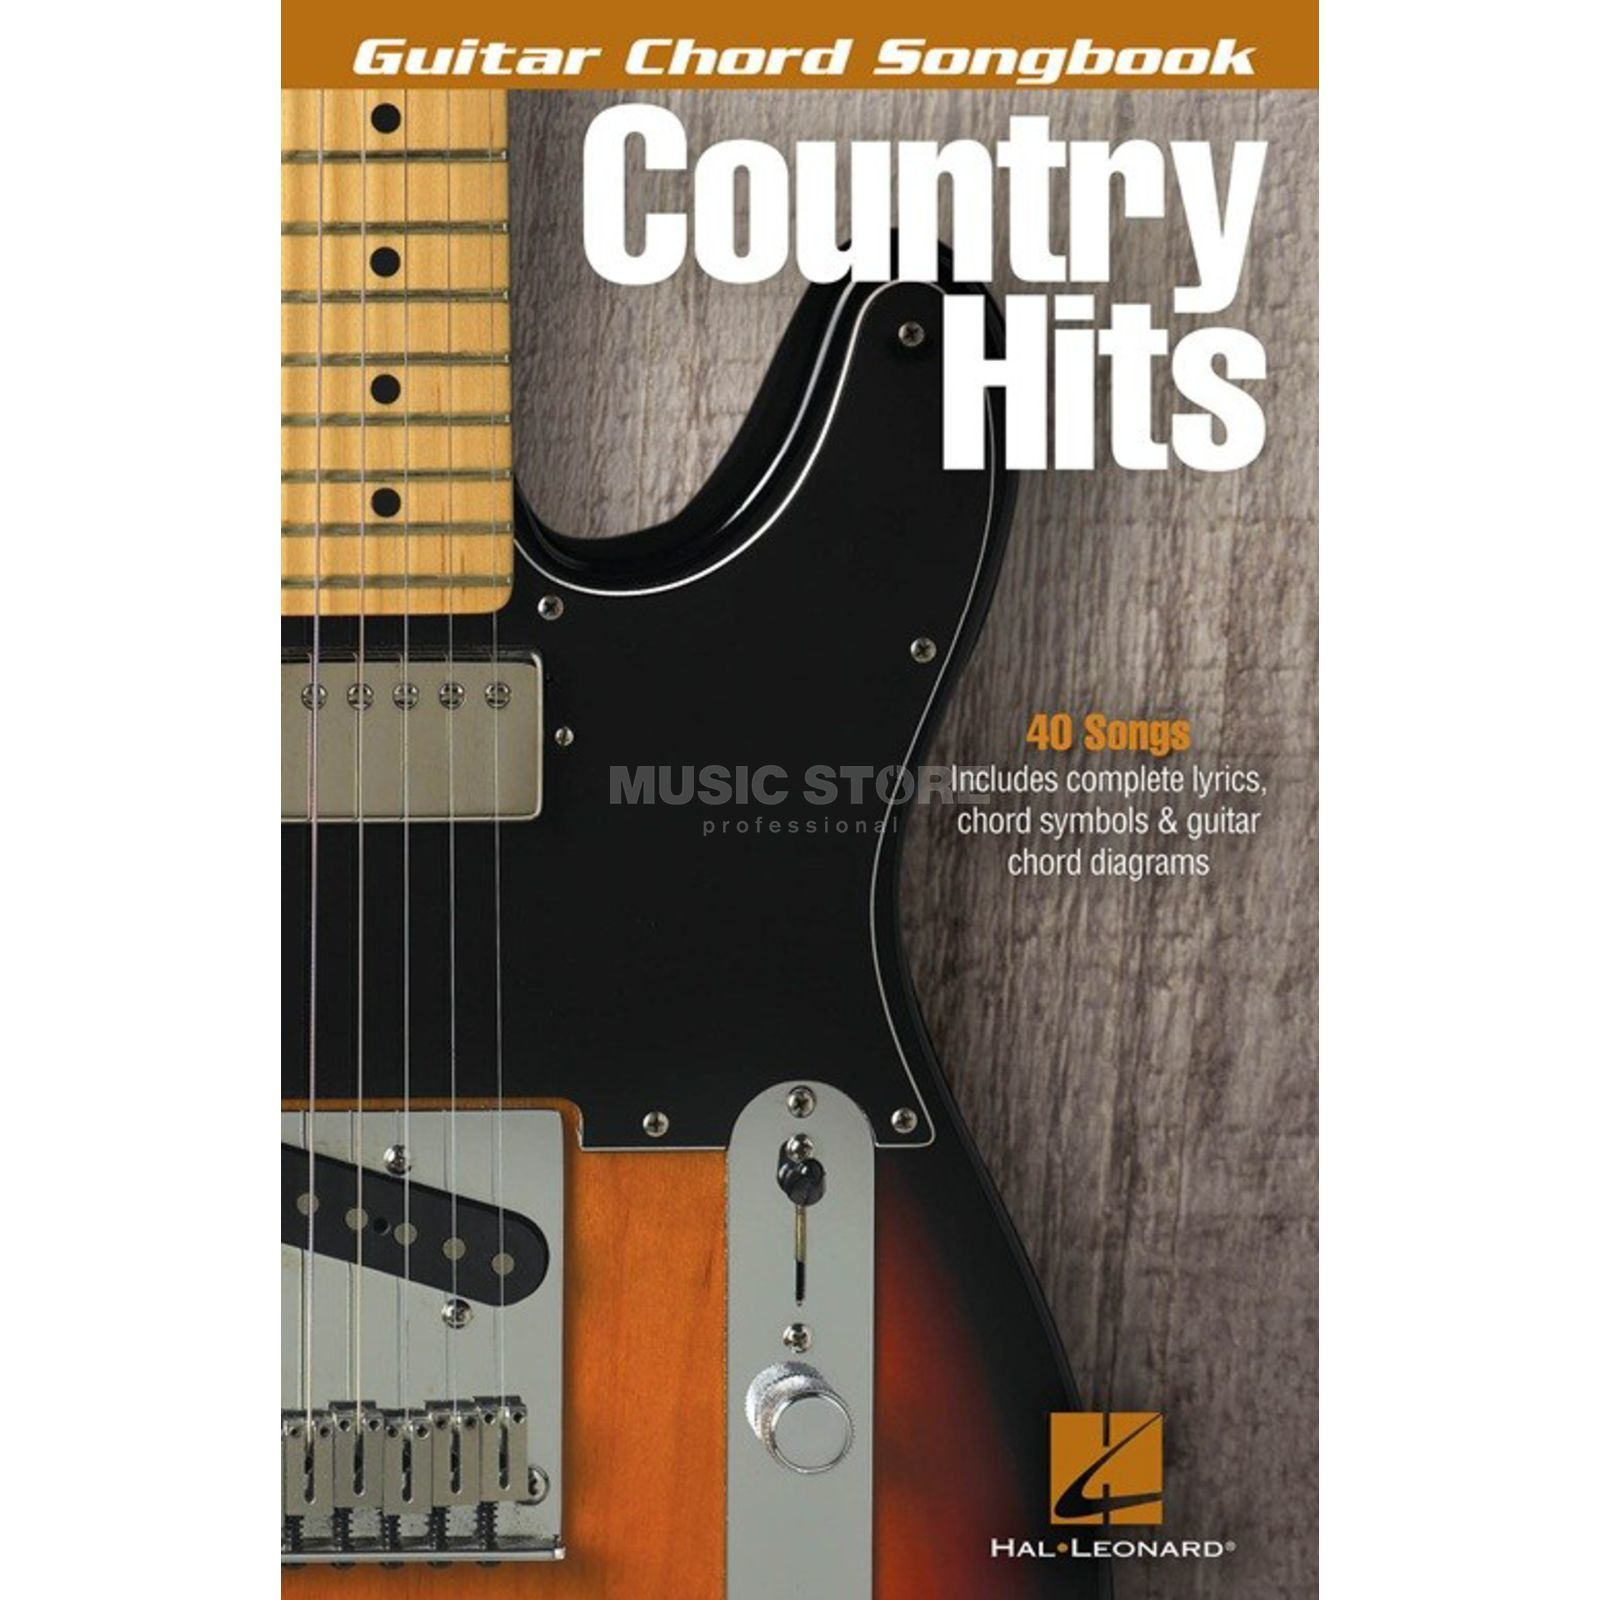 Hal Leonard Guitar Chord Songbook: Country Hits Produktbild